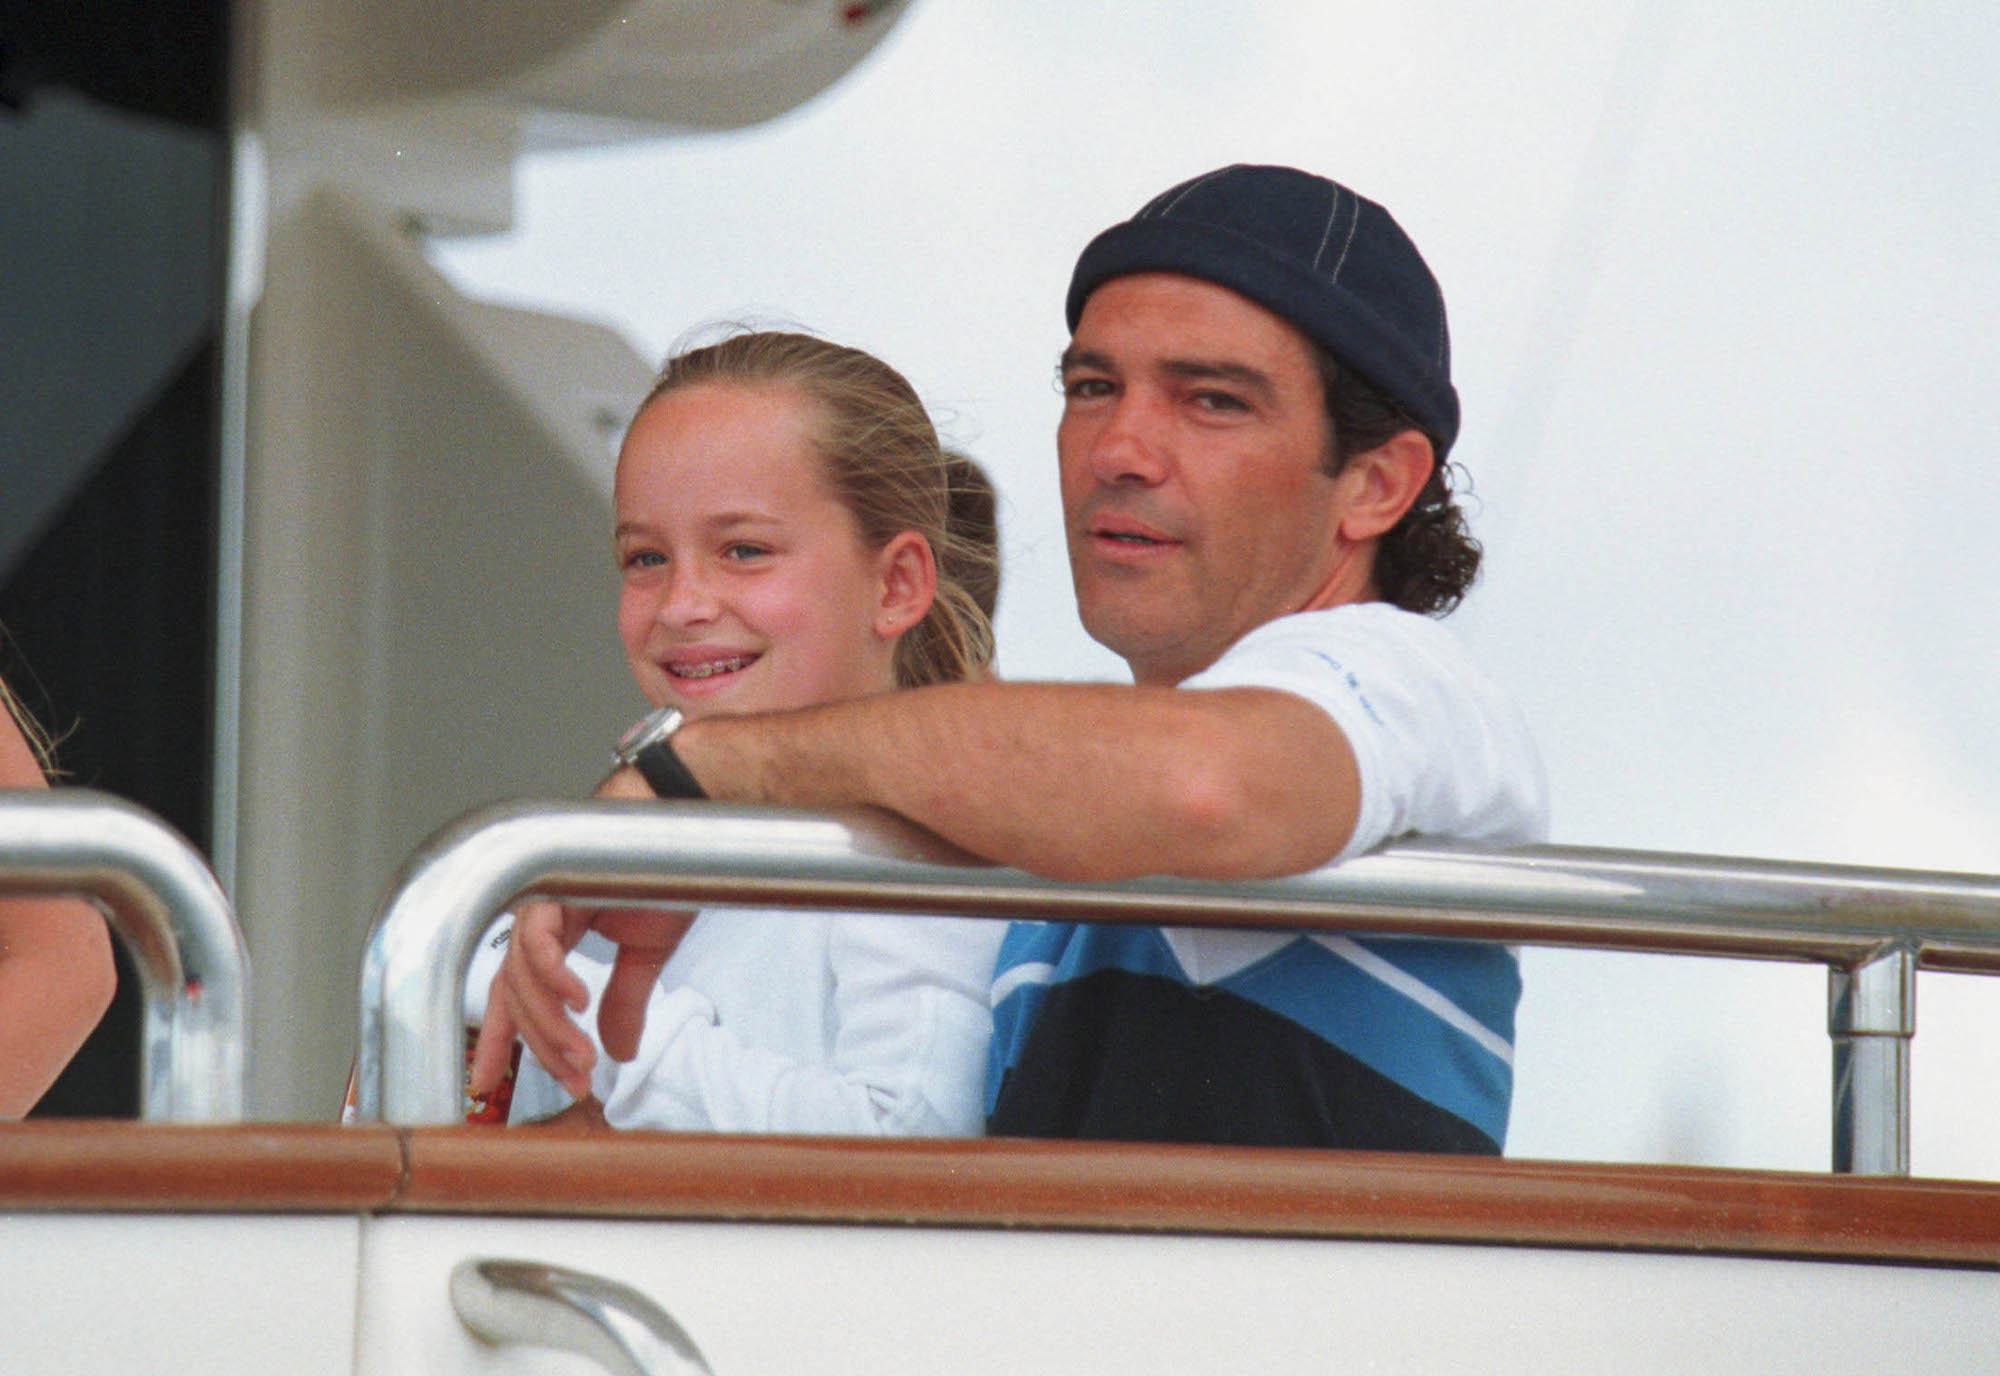 Antonio Banderas with Dakota Johnson on a yacht during the Copa del Ray regatta, August 06, 2000.